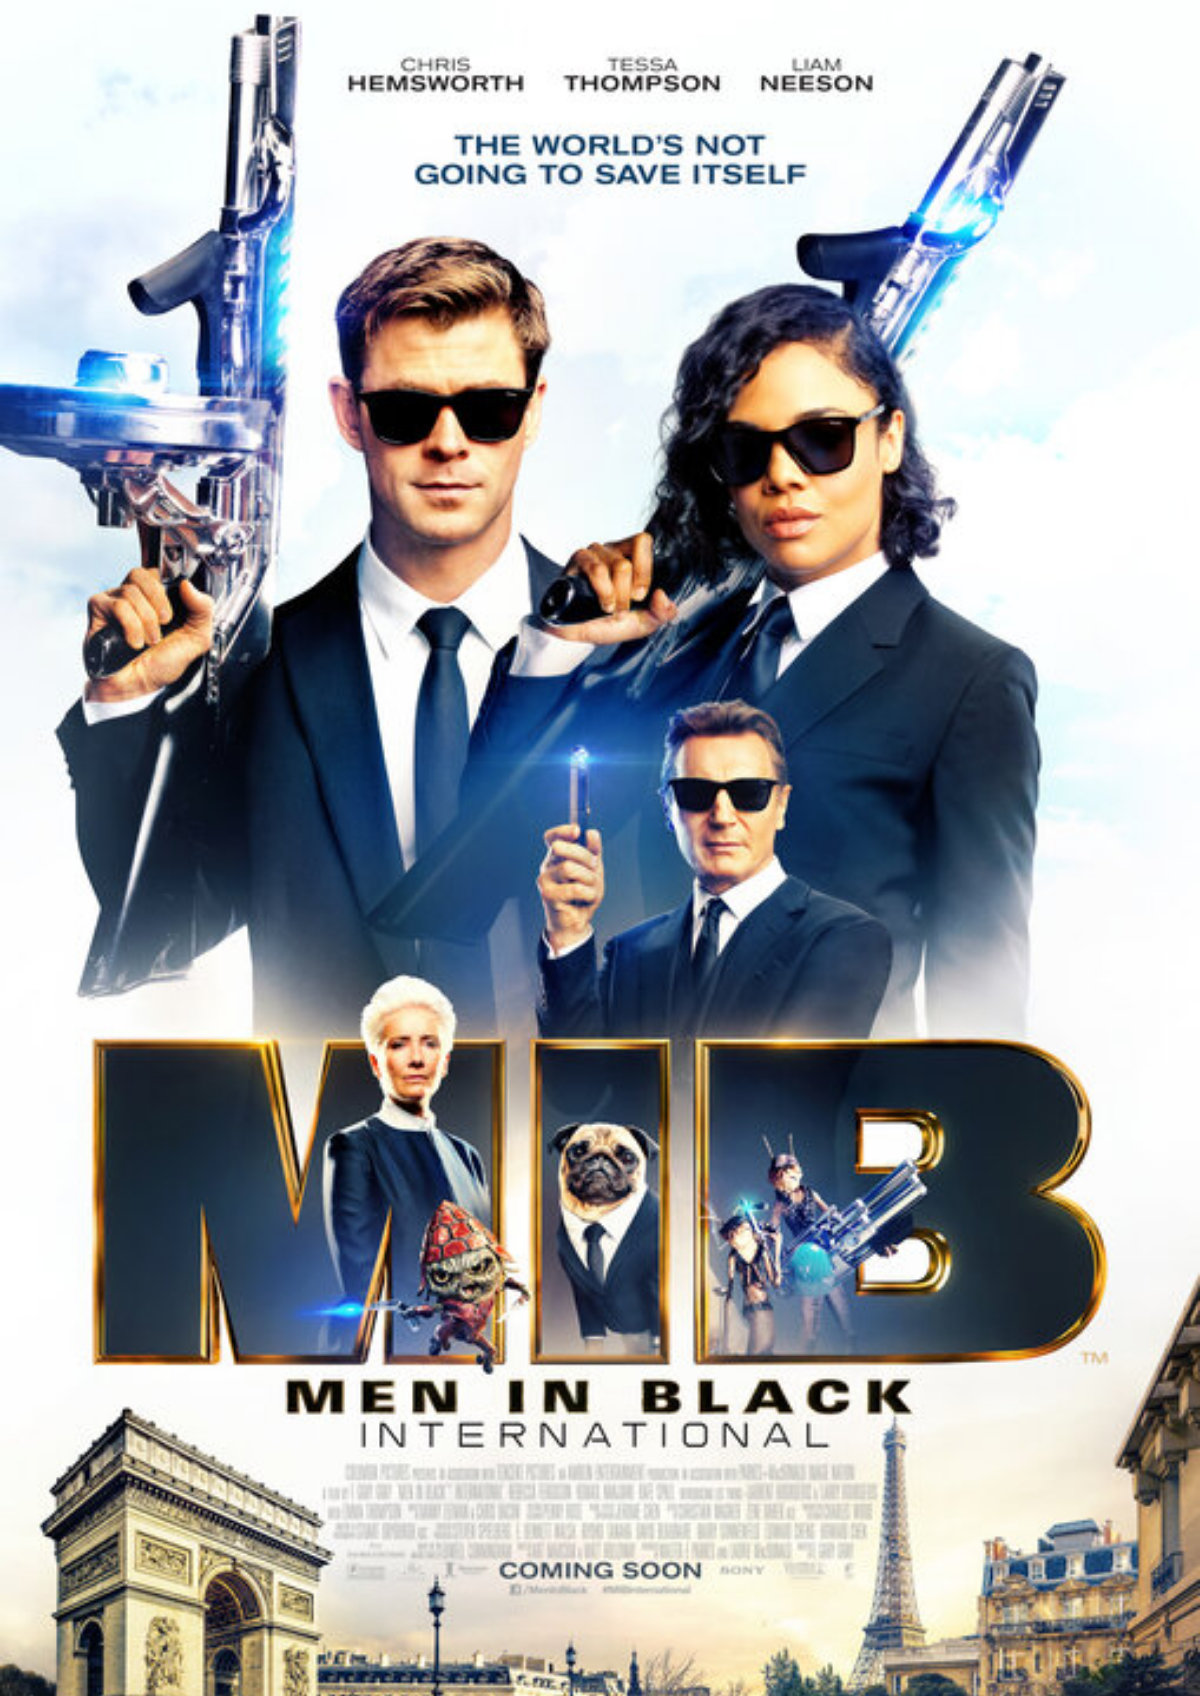 'Men In Black: International' movie poster